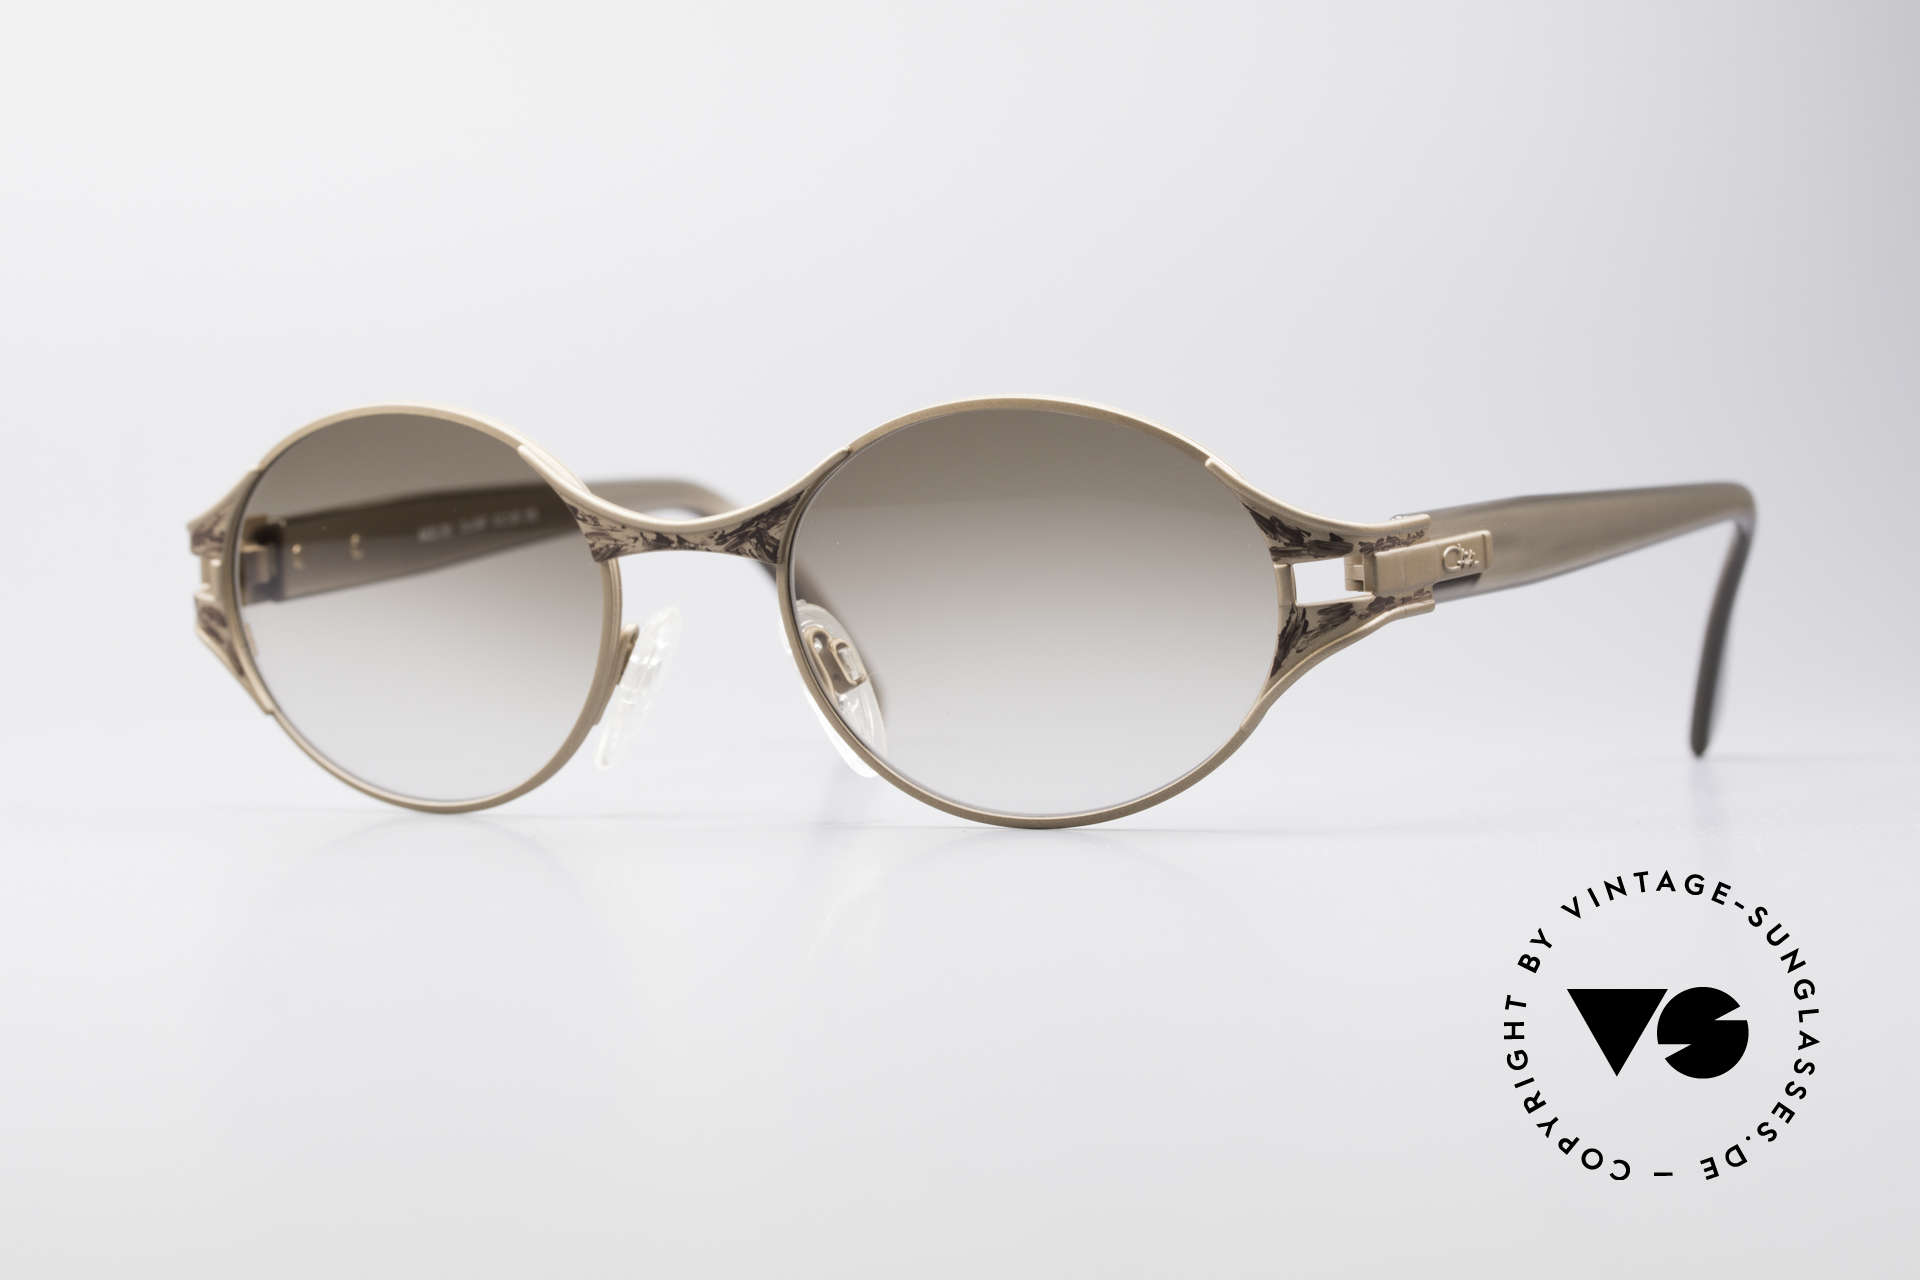 Cazal 281 90's Sunglasses Oval Round, original CAZAL vintage sunglasses of the late 90's, Made for Women